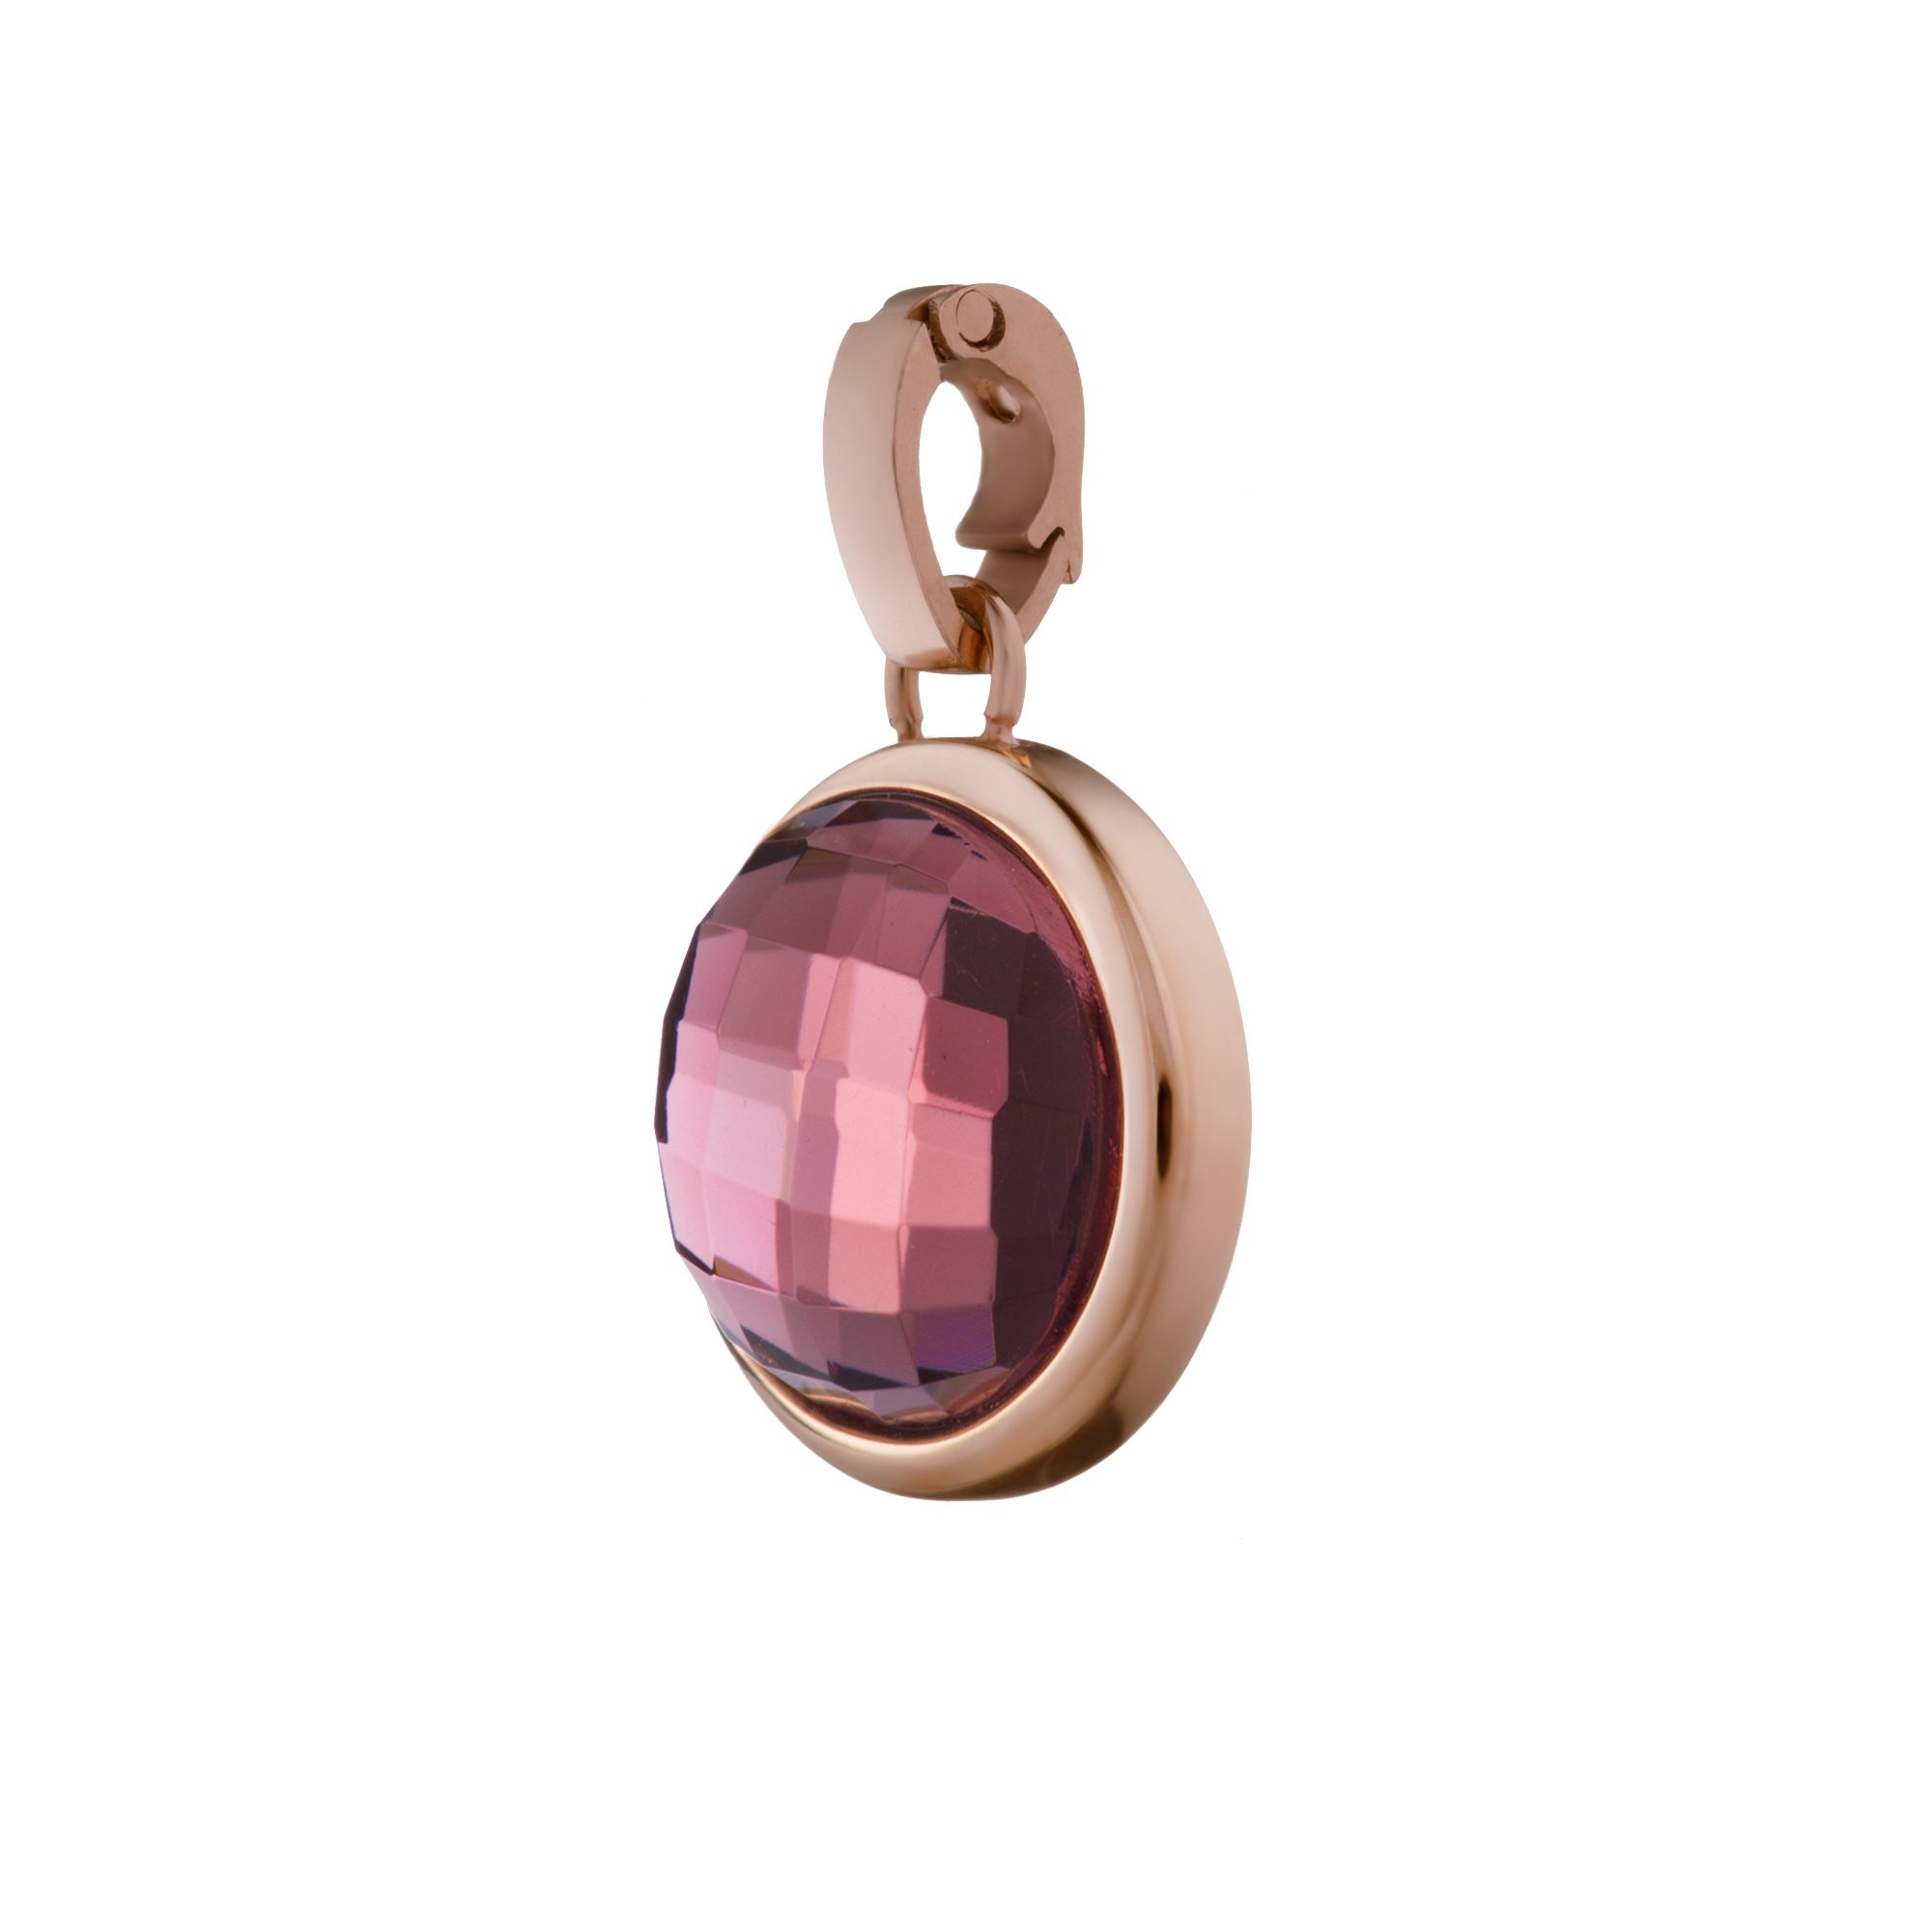 Devotion Signature Pendant Rose Gold, Purple Glass Pertaining To Most Up To Date Purple February Birthstone Locket Element Necklaces (View 11 of 25)